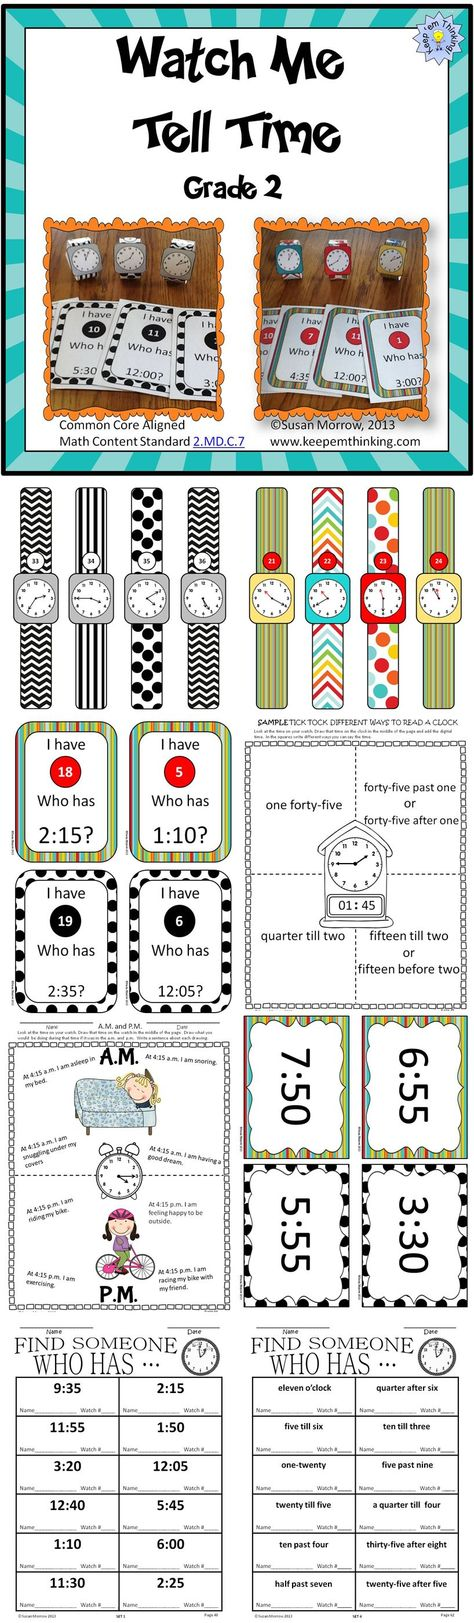 $ Watch Me Tell Time for 2nd Grade uses individual student watches to get your students up and moving and actively involved in learning to tell time to the nearest five minutes. The unit includes 48 individual watches for you to print out, laminate and have students wear during activities to teach time to 5 minute intervals. The watches are available in both color and black and white to save printing costs.